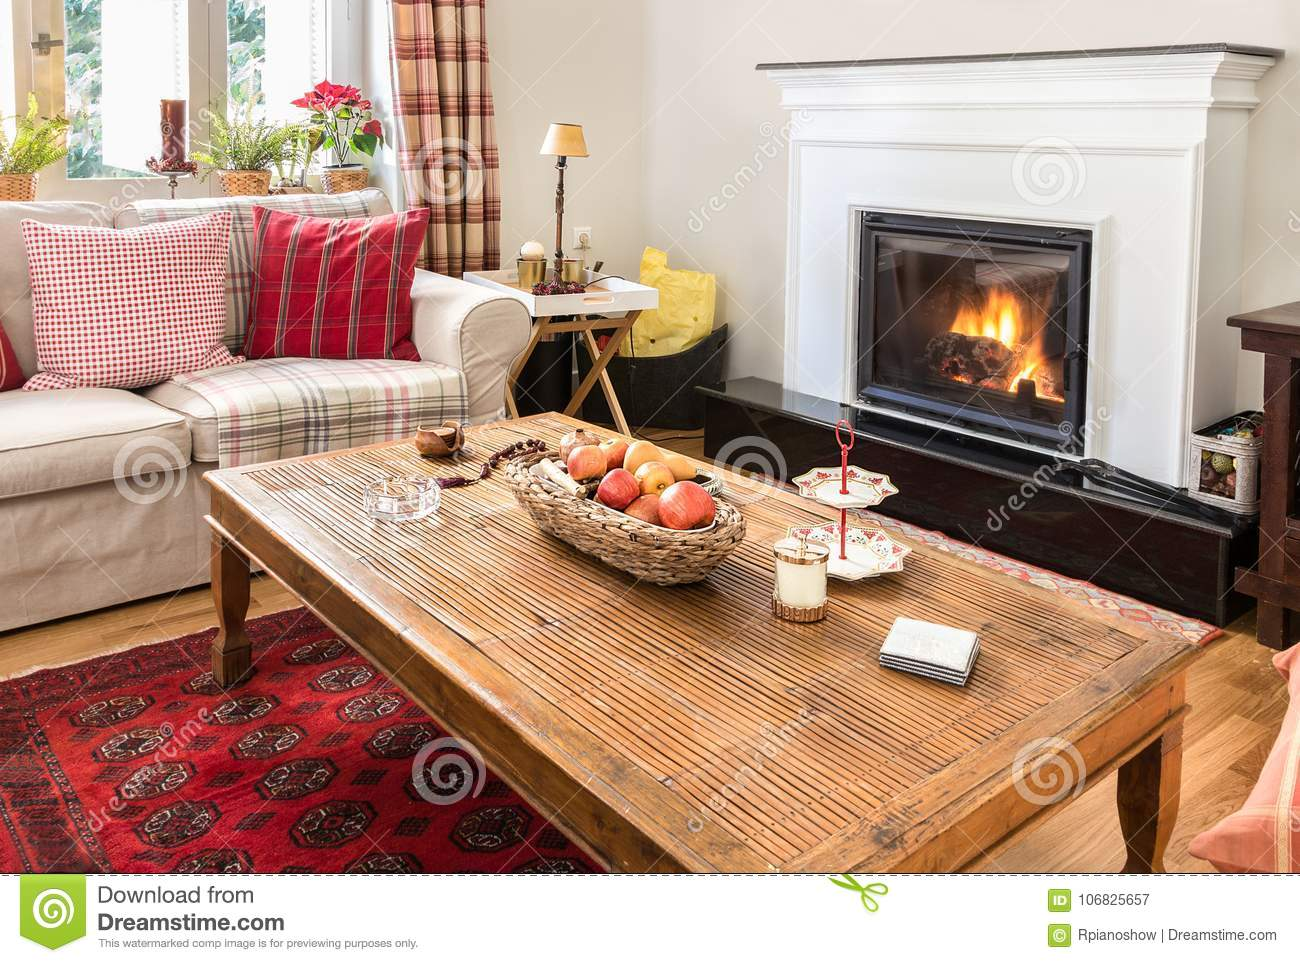 Groovy Living Room Interior With Fireplace Wooden And Warm Style Creativecarmelina Interior Chair Design Creativecarmelinacom